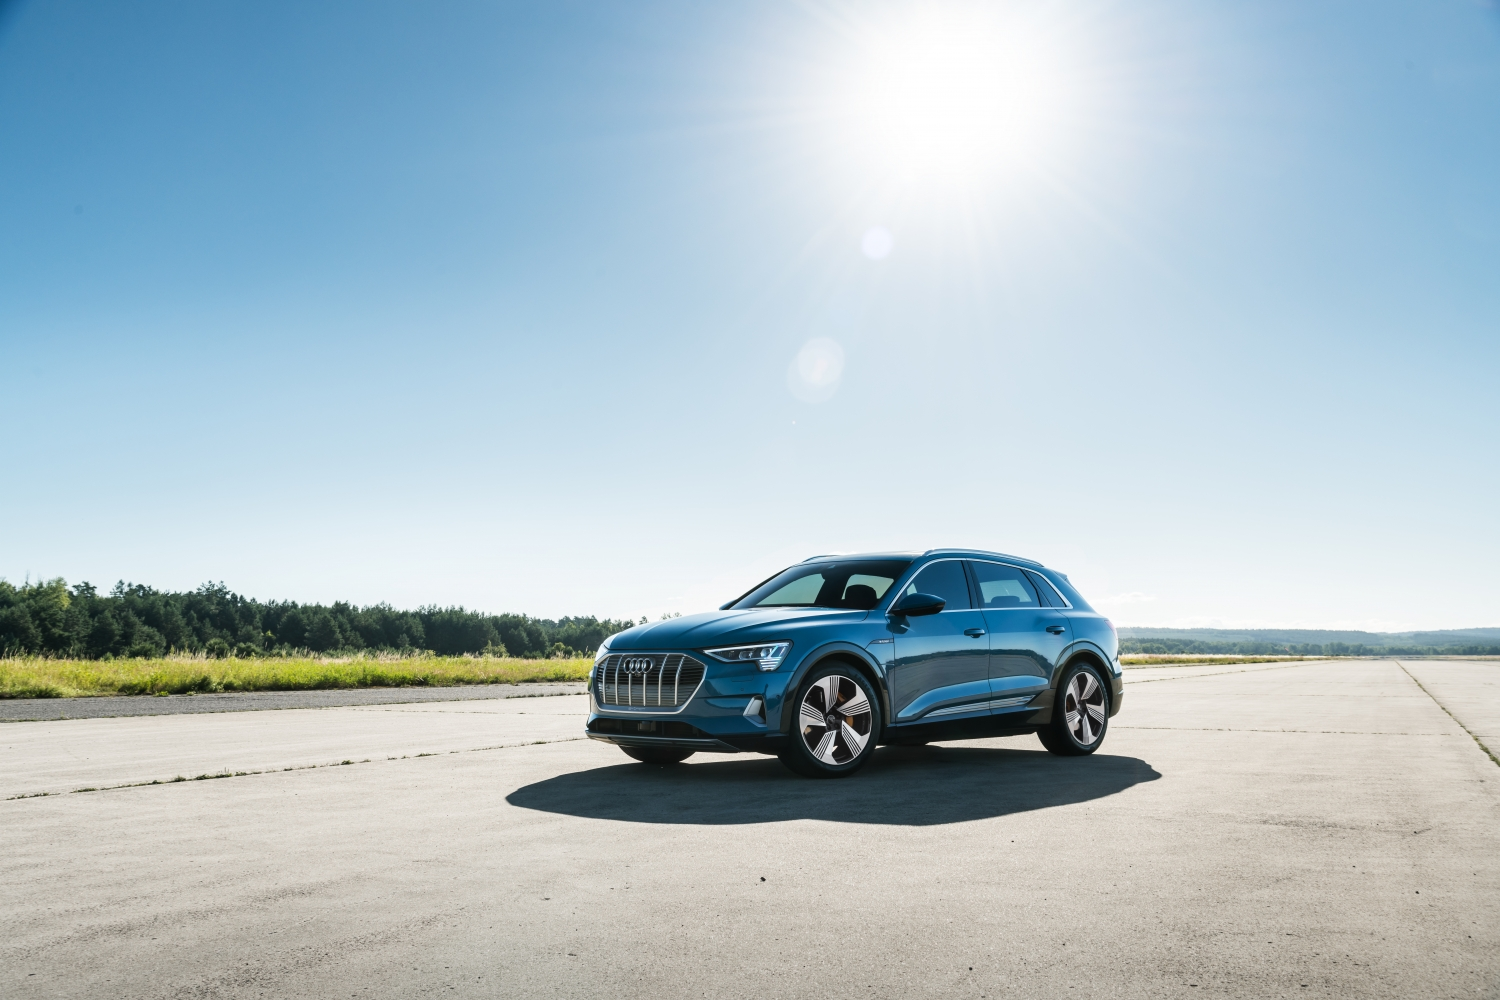 The all-electric Audi e-tron SUV will get just 204 miles of range thumbnail